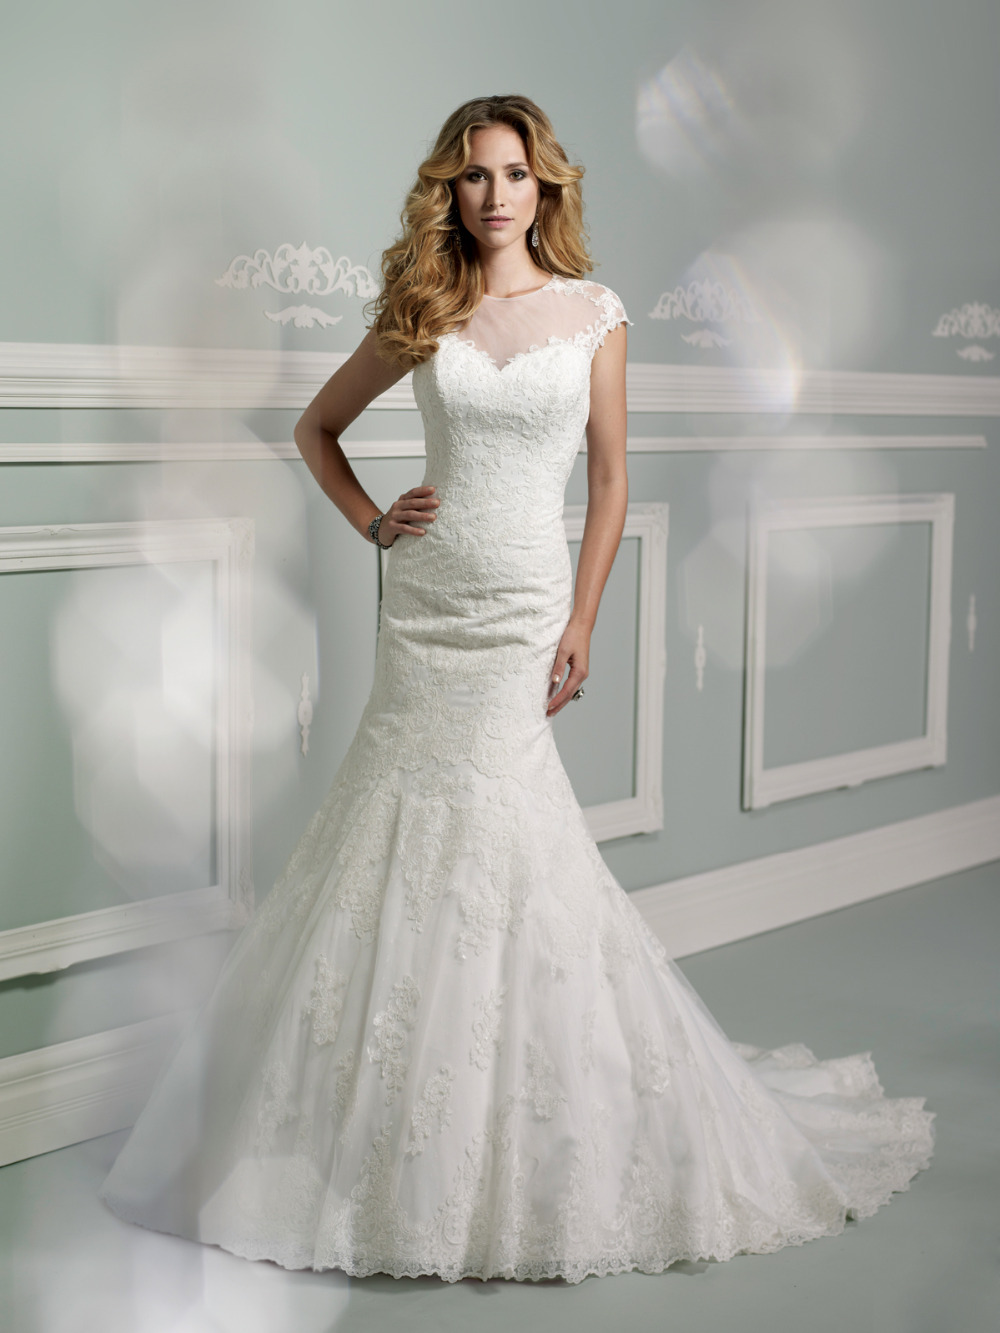 Fast wedding dresses wedding guest dresses fast wedding dresses 98 ombrellifo Image collections